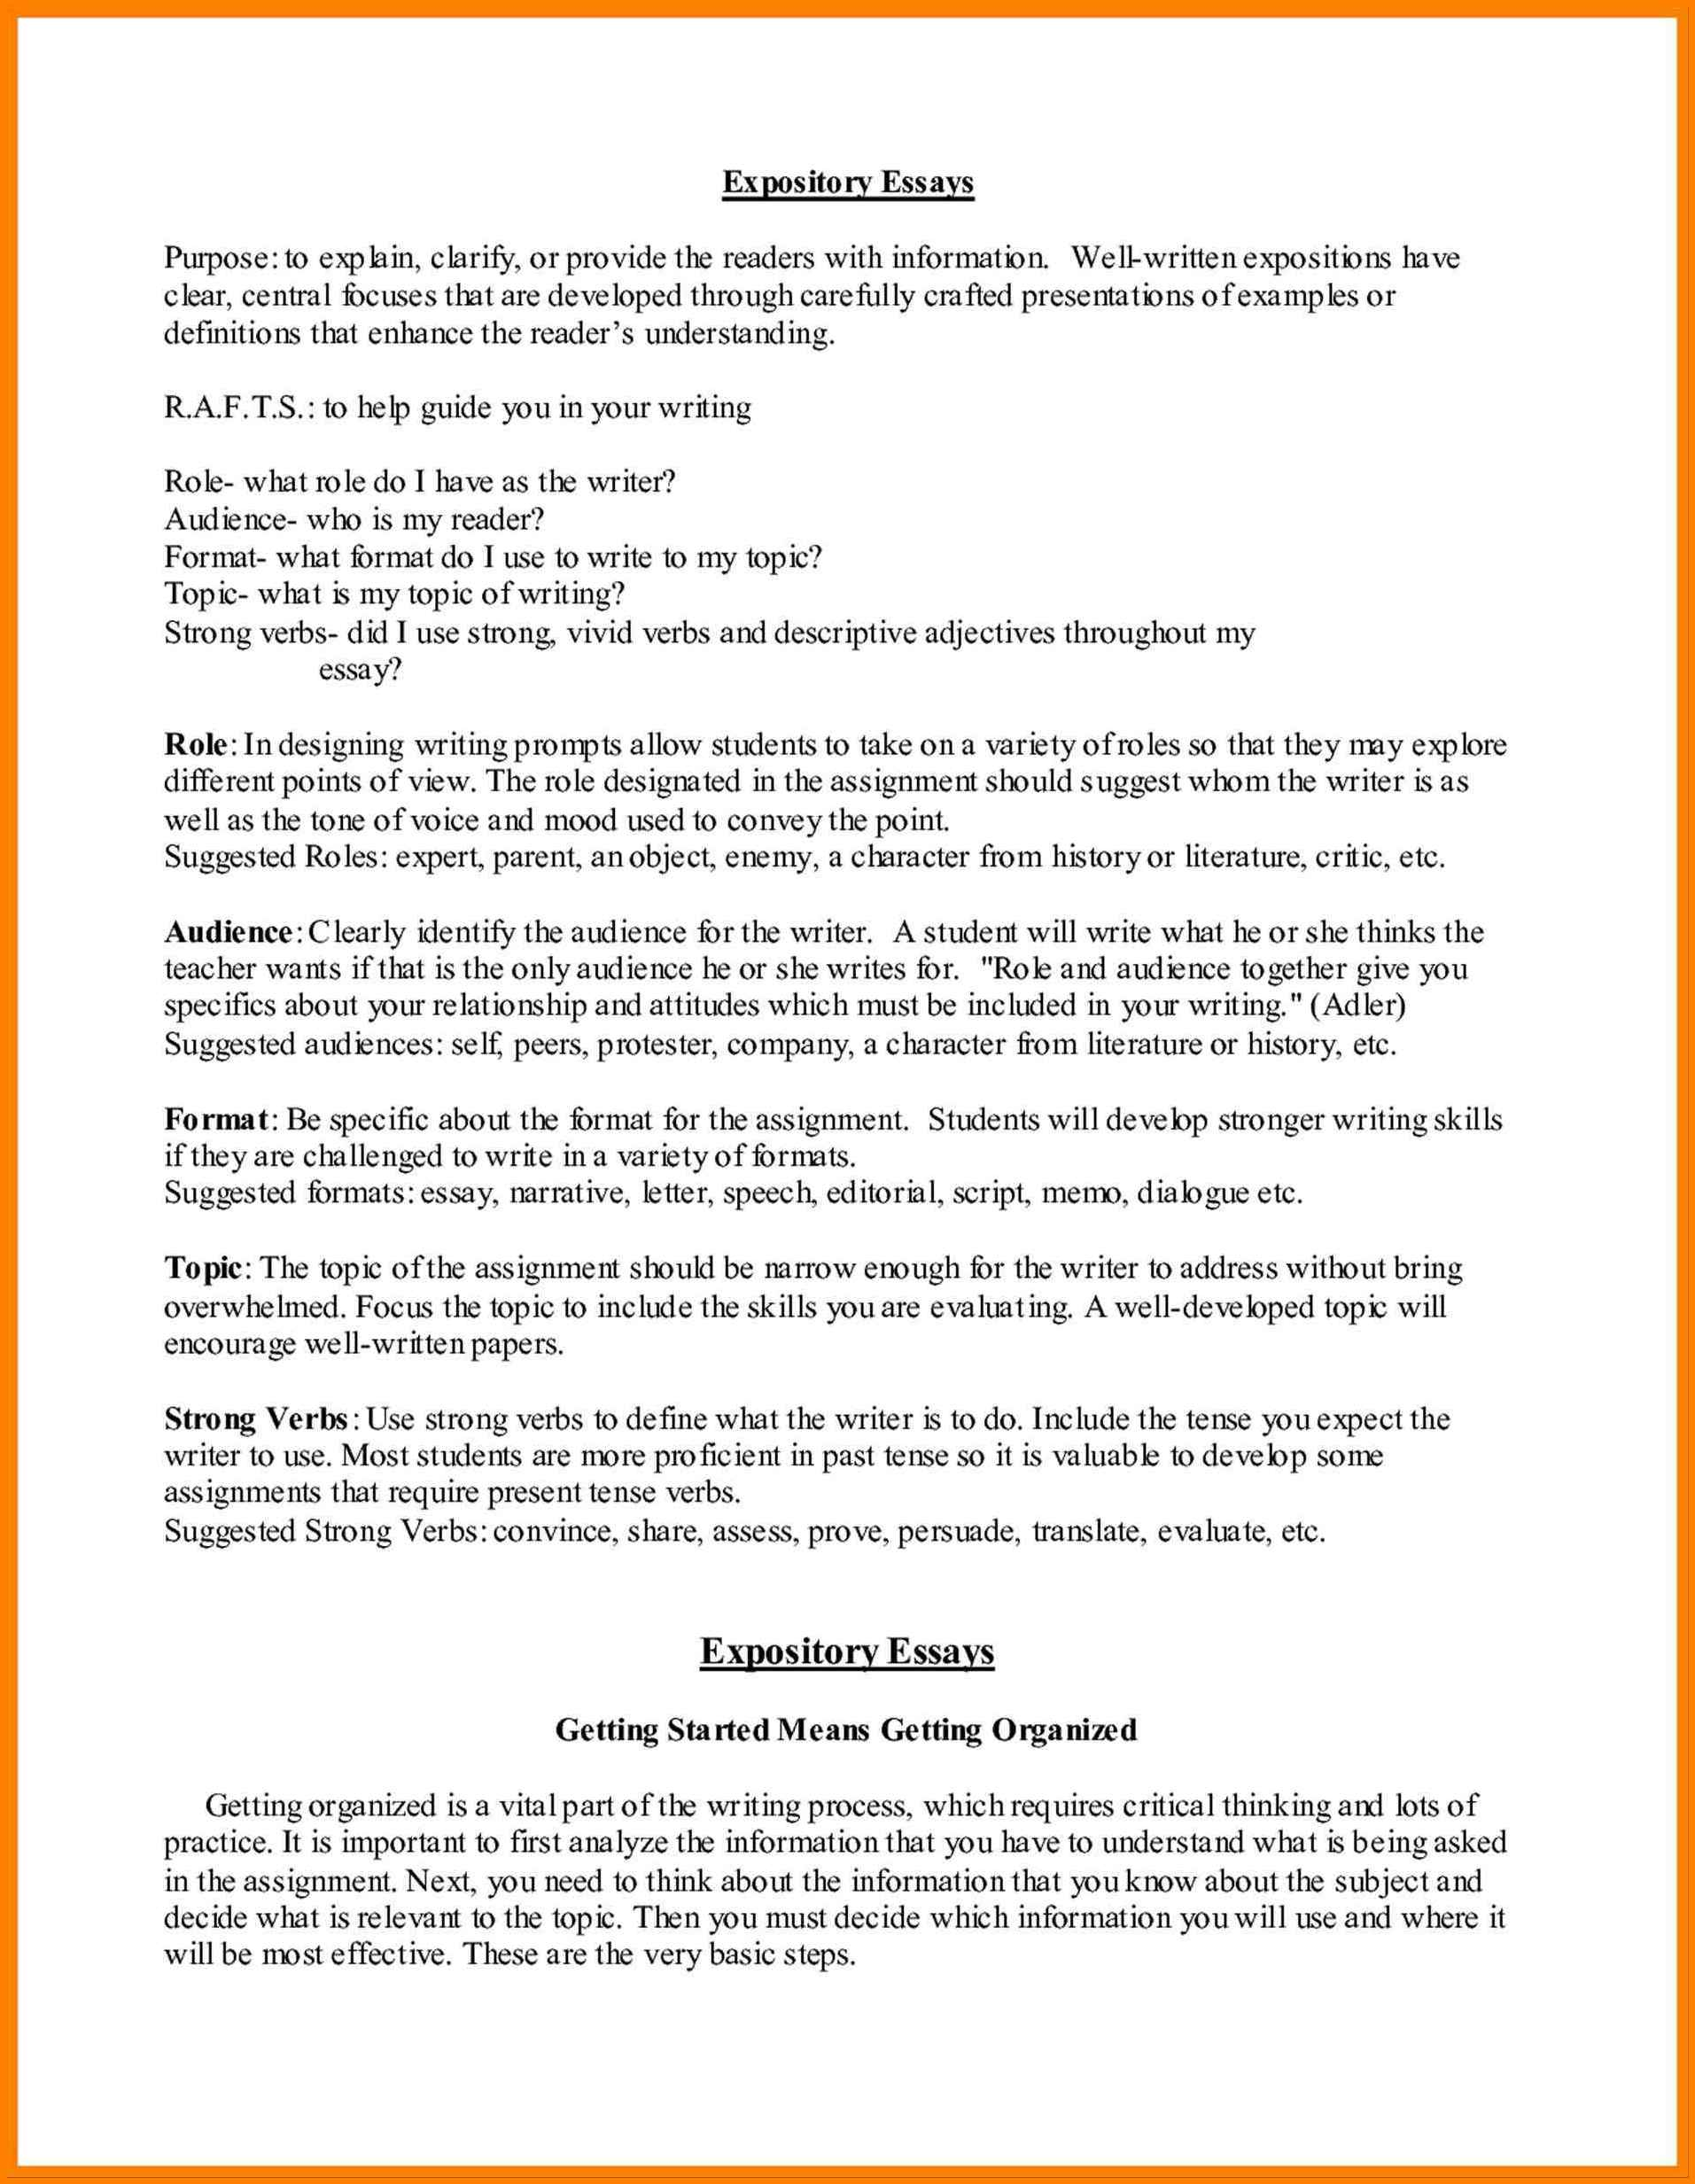 017 Essayxampleditorialxamples For High School Highschool Students Withxpected Salary Sample Sat Promptsssays Need Help My What To Say Inmail Surprising Essays Pdf 2017 Writing Full